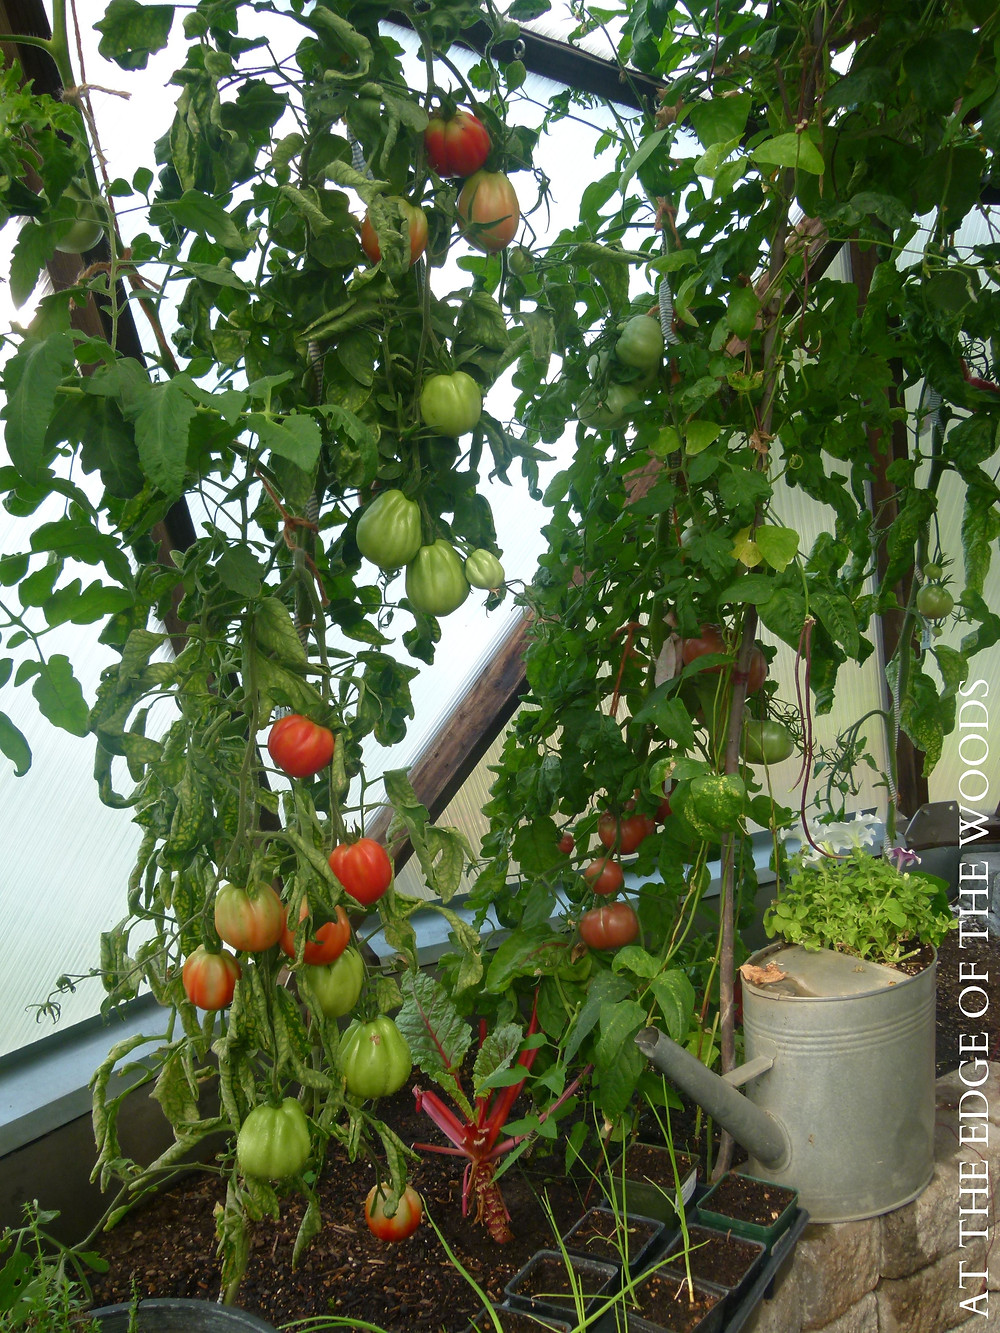 tomato vines are trained to eyebolts around the walls of the greenhouse